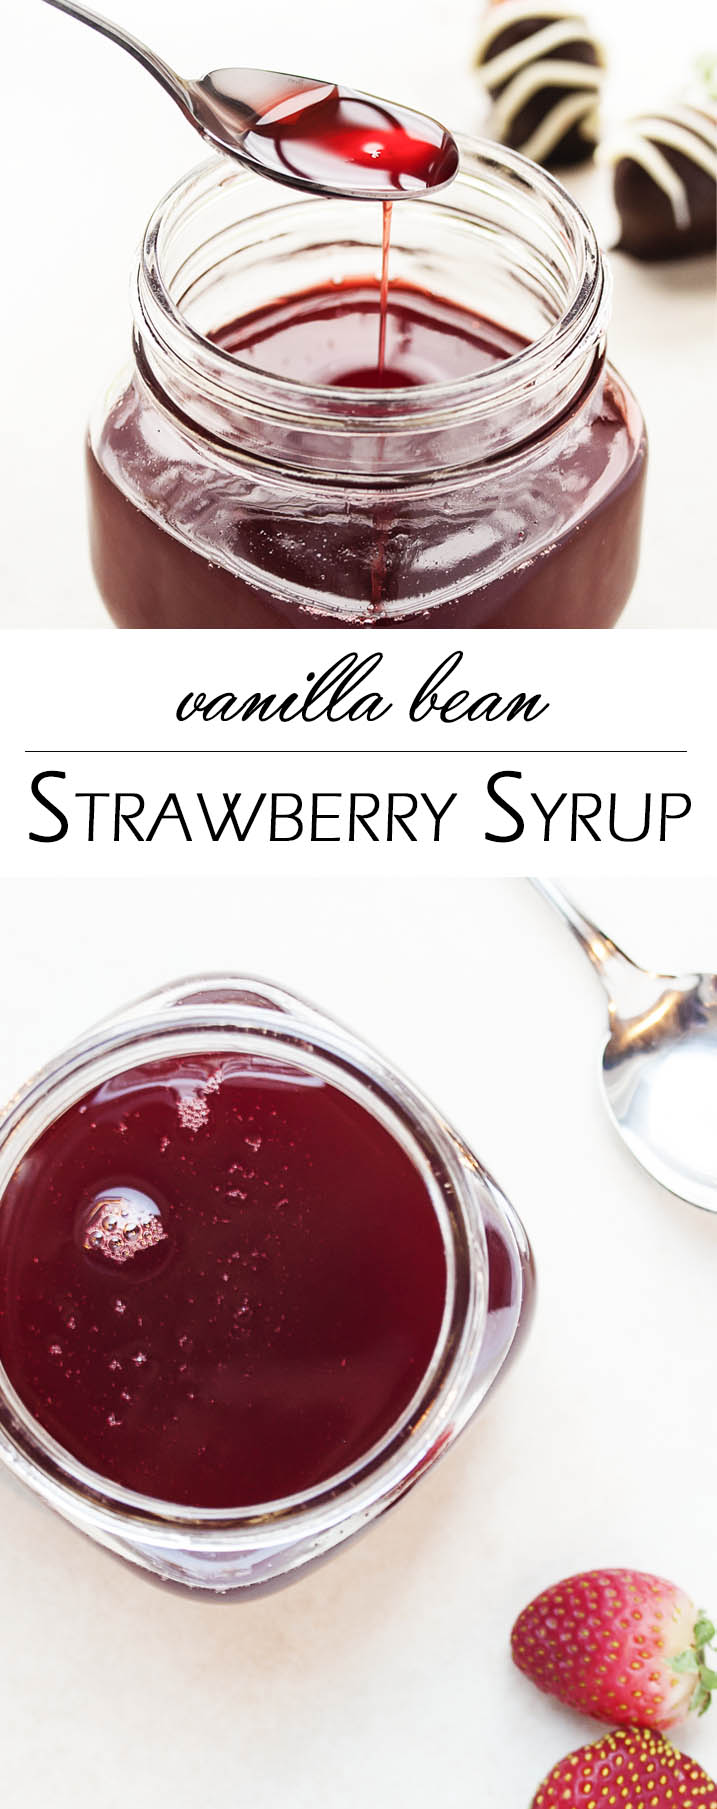 Strawberry Vanilla Bean Syrup - This strawberry vanilla syrup is full of intense strawberry flavor that you will love on pancakes, mixed into yogurt, poured on pound cake, made into cocktails, and so many other ways! And it all starts from frozen strawberries. | justalittlebitofbacon.com